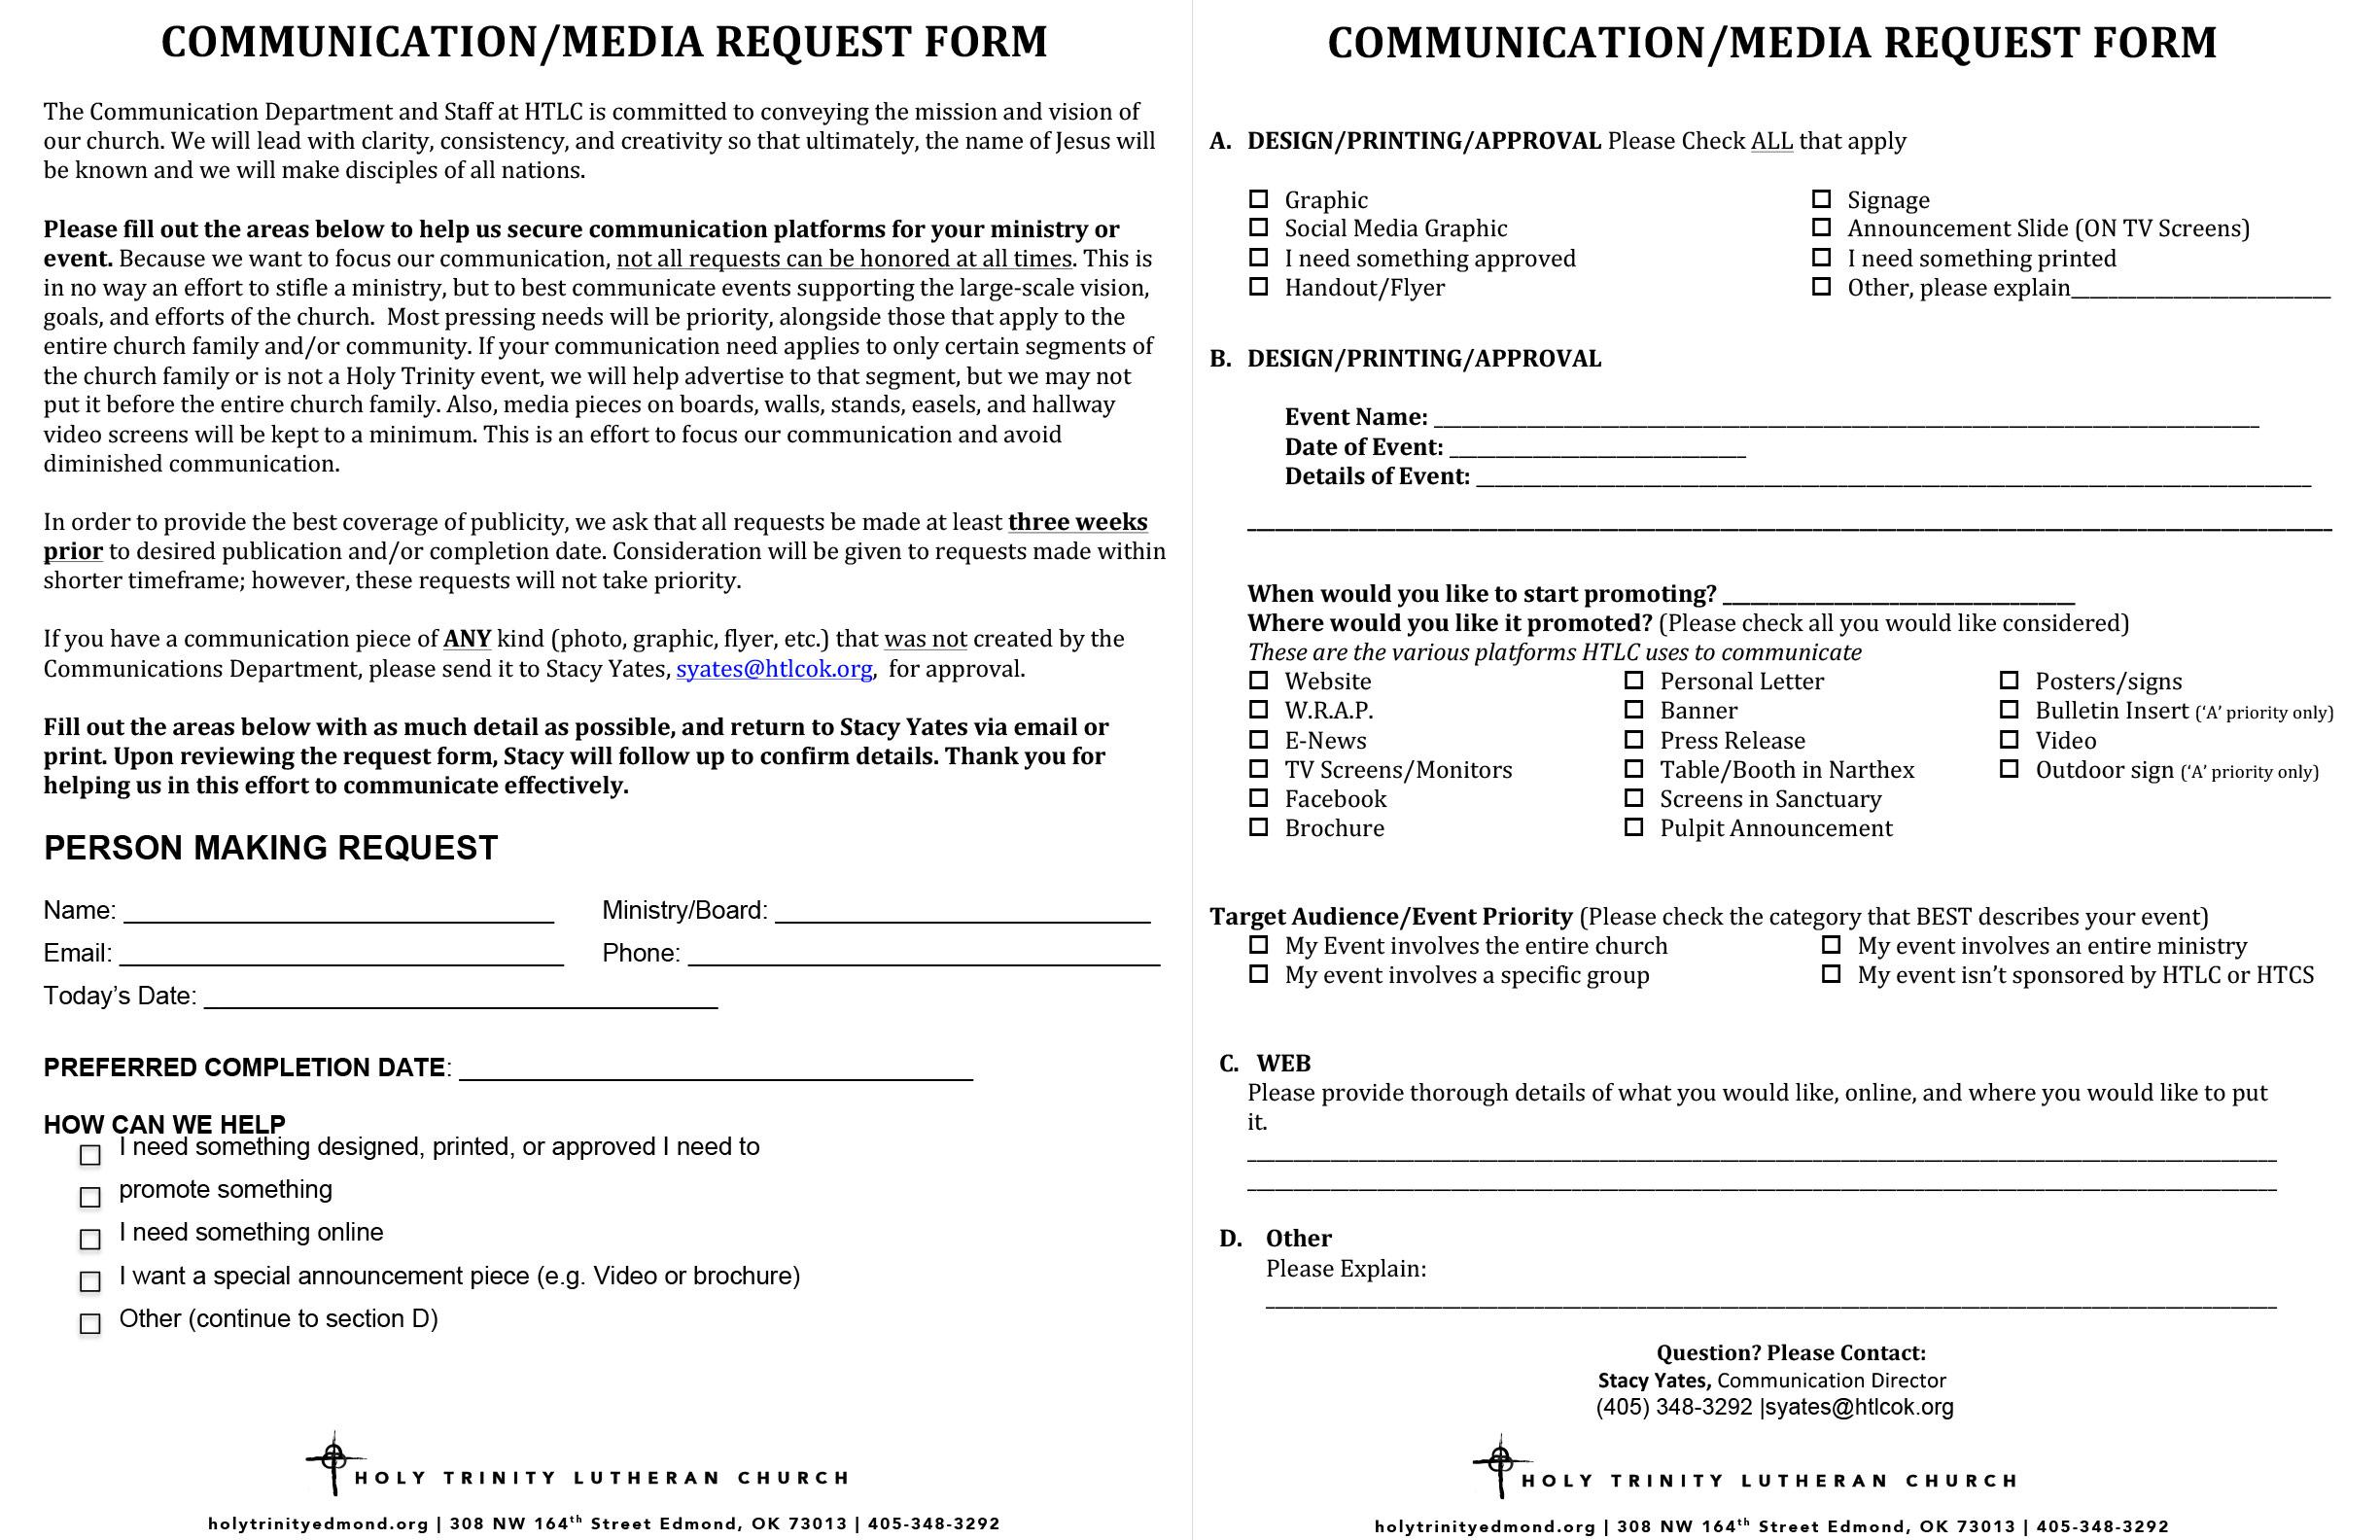 Communication/Media Request Form